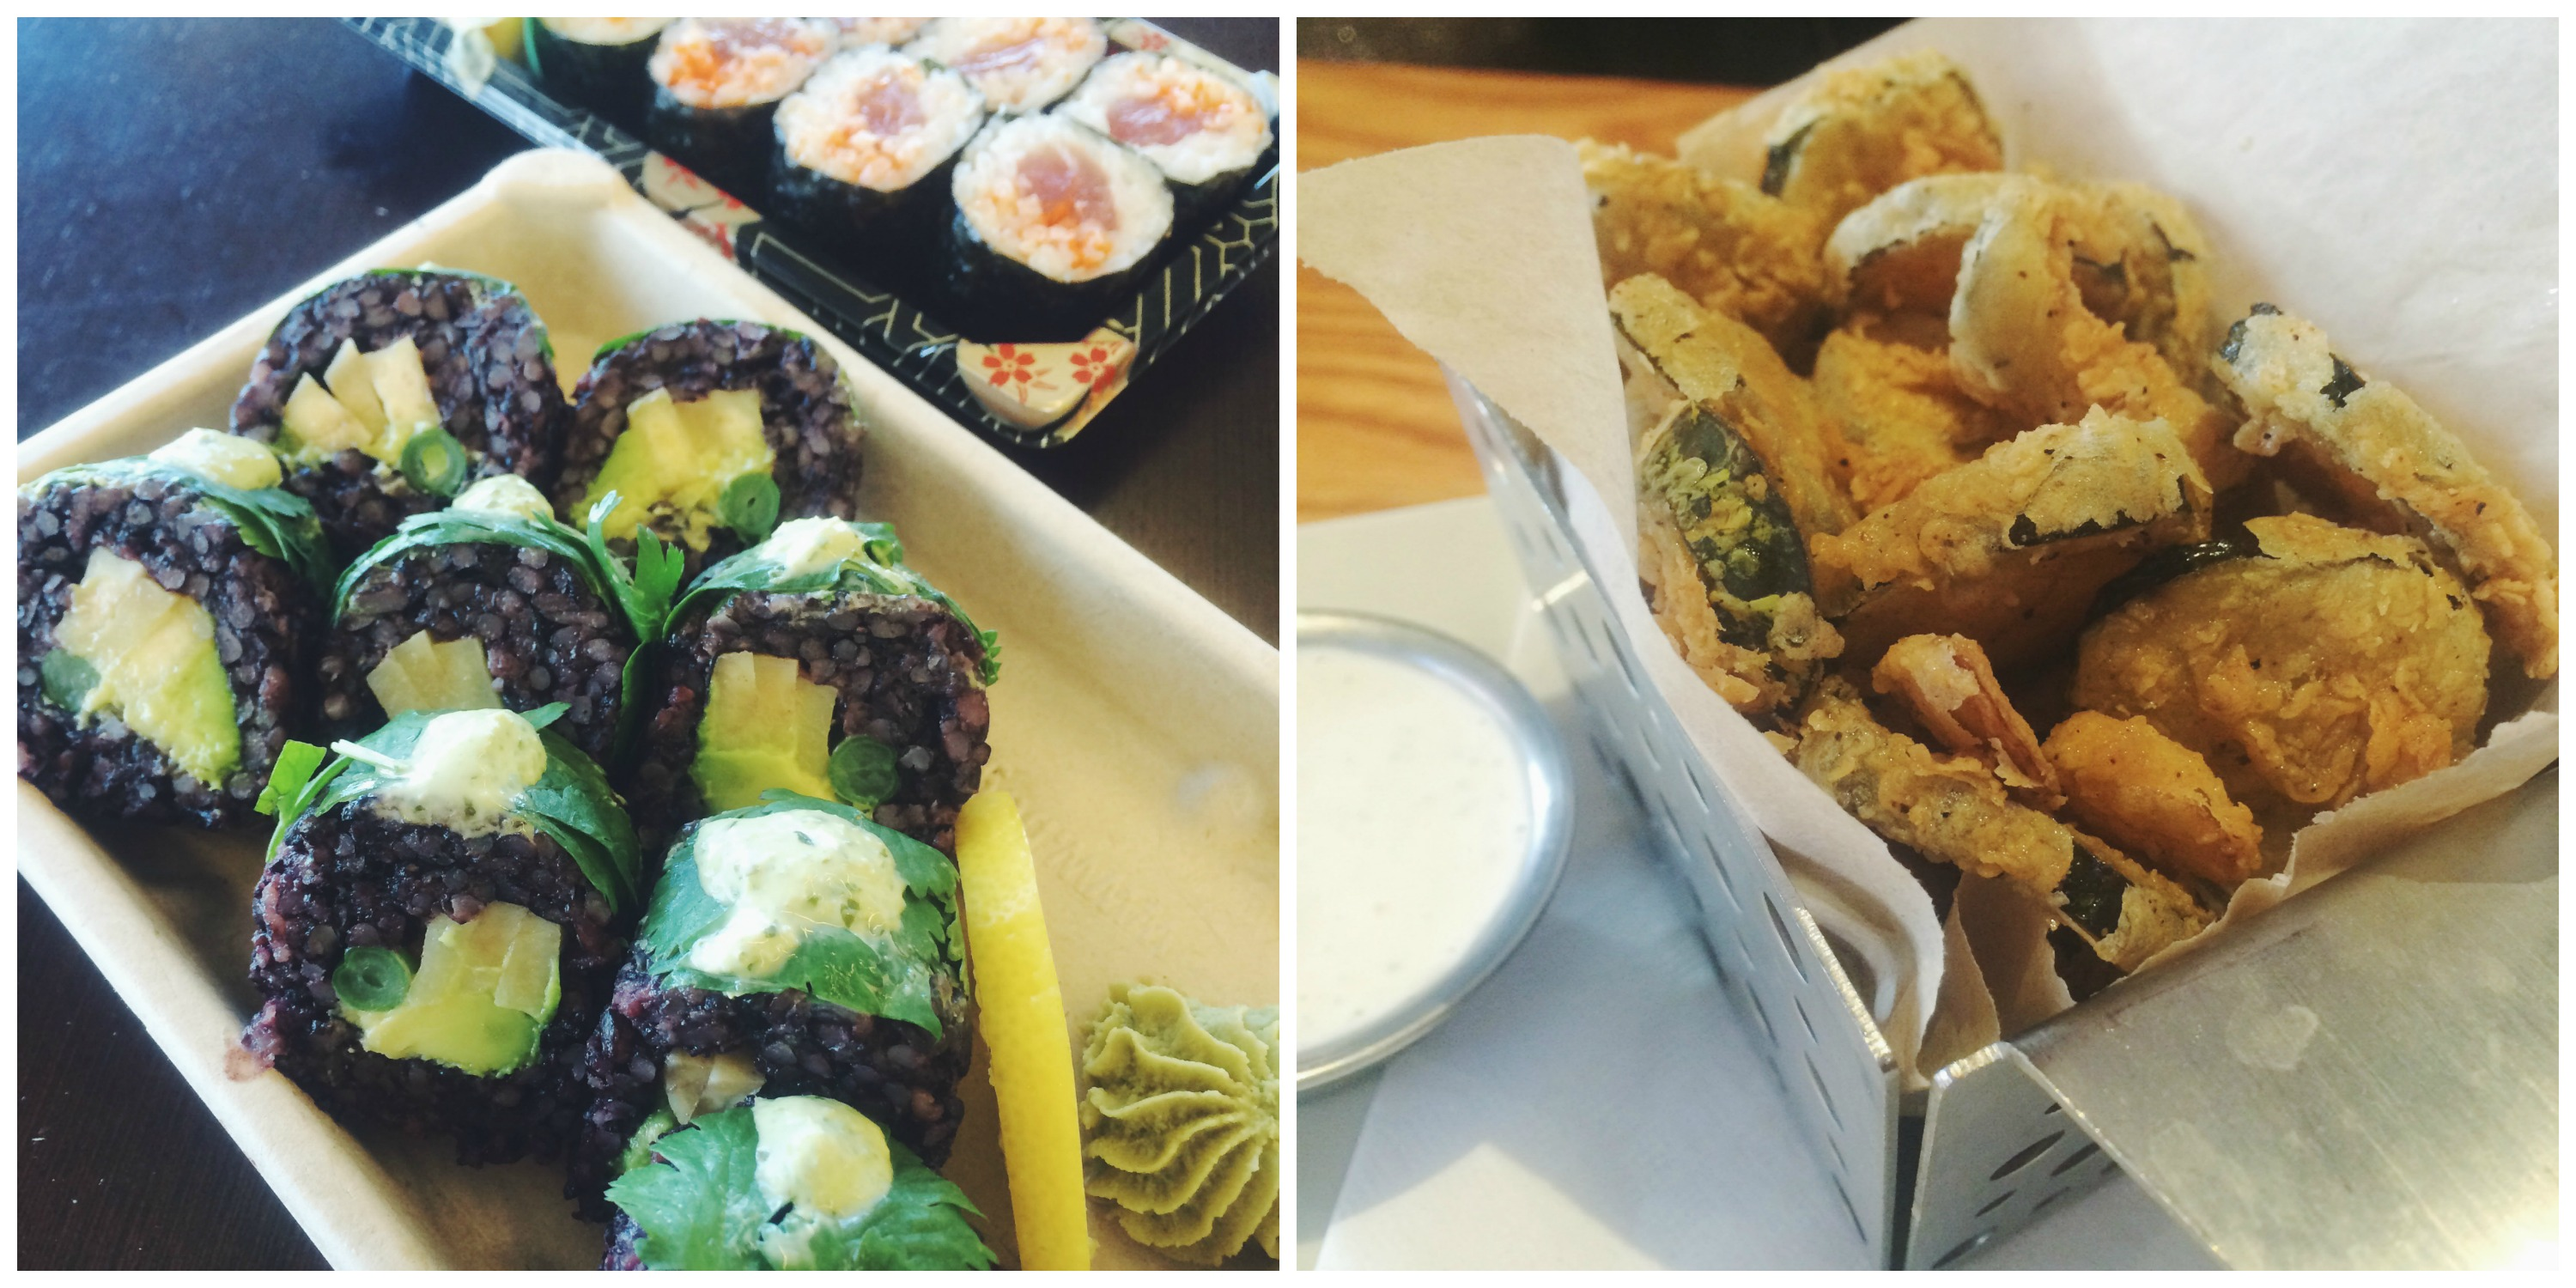 Sushi & Fried Pickles